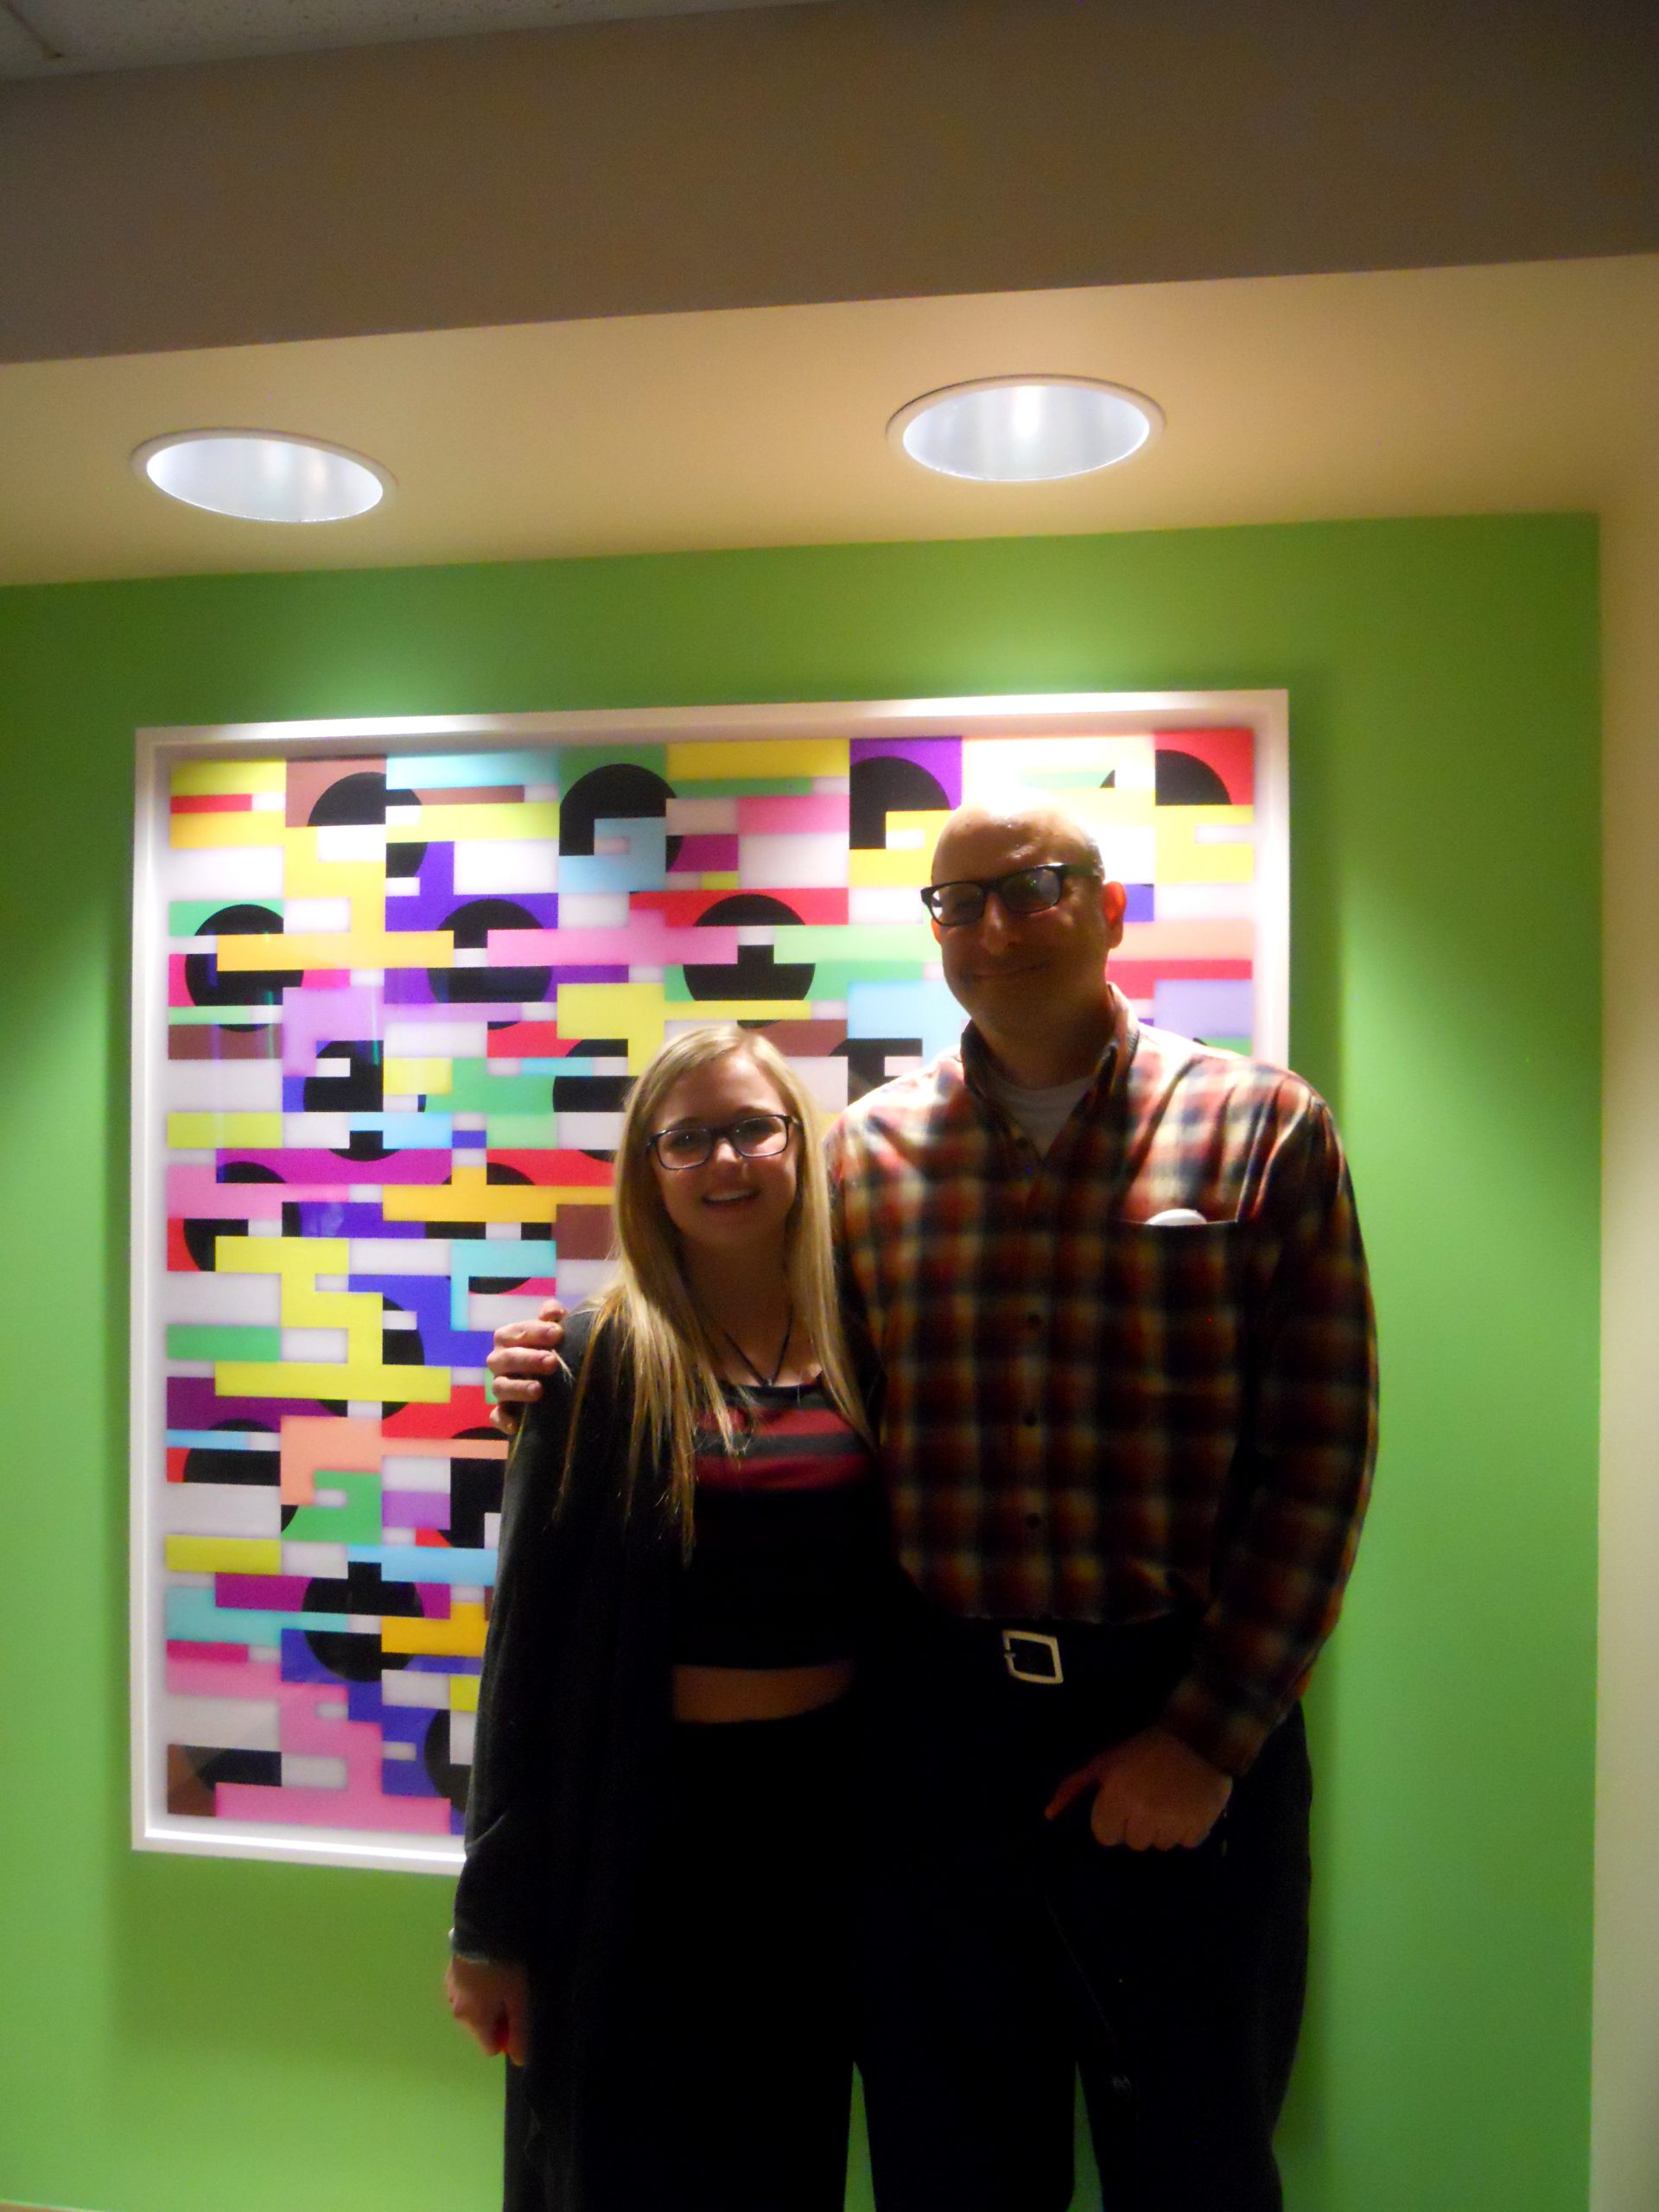 Wall Art Greeting to Cystic Fibrosis Center